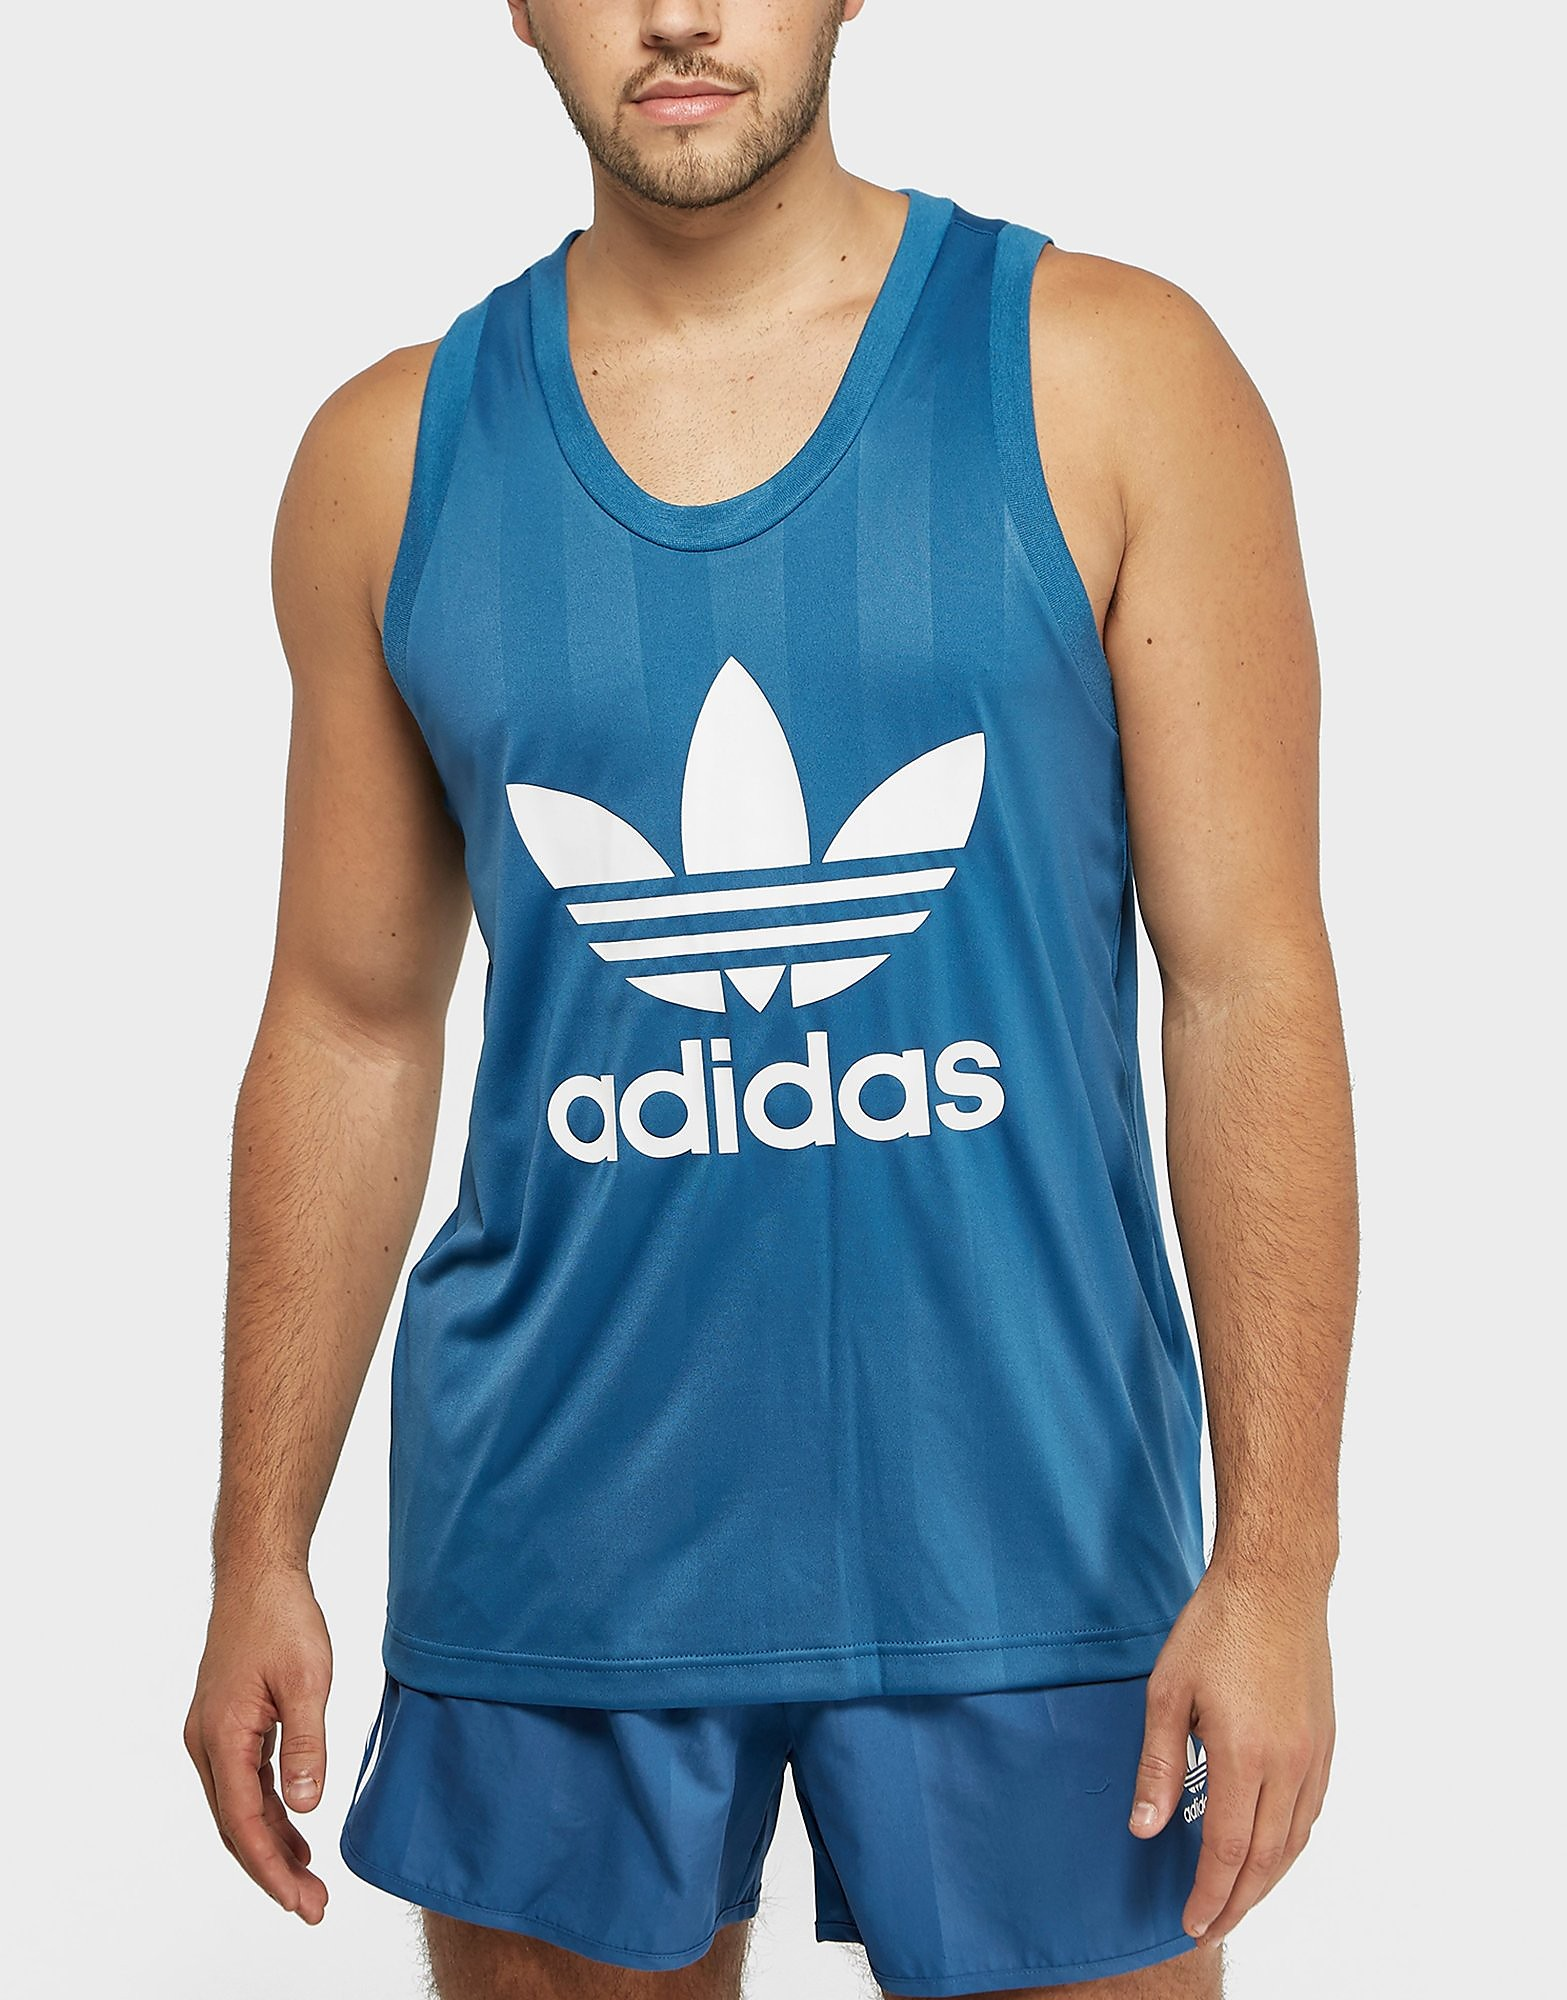 adidas Originals California Vest